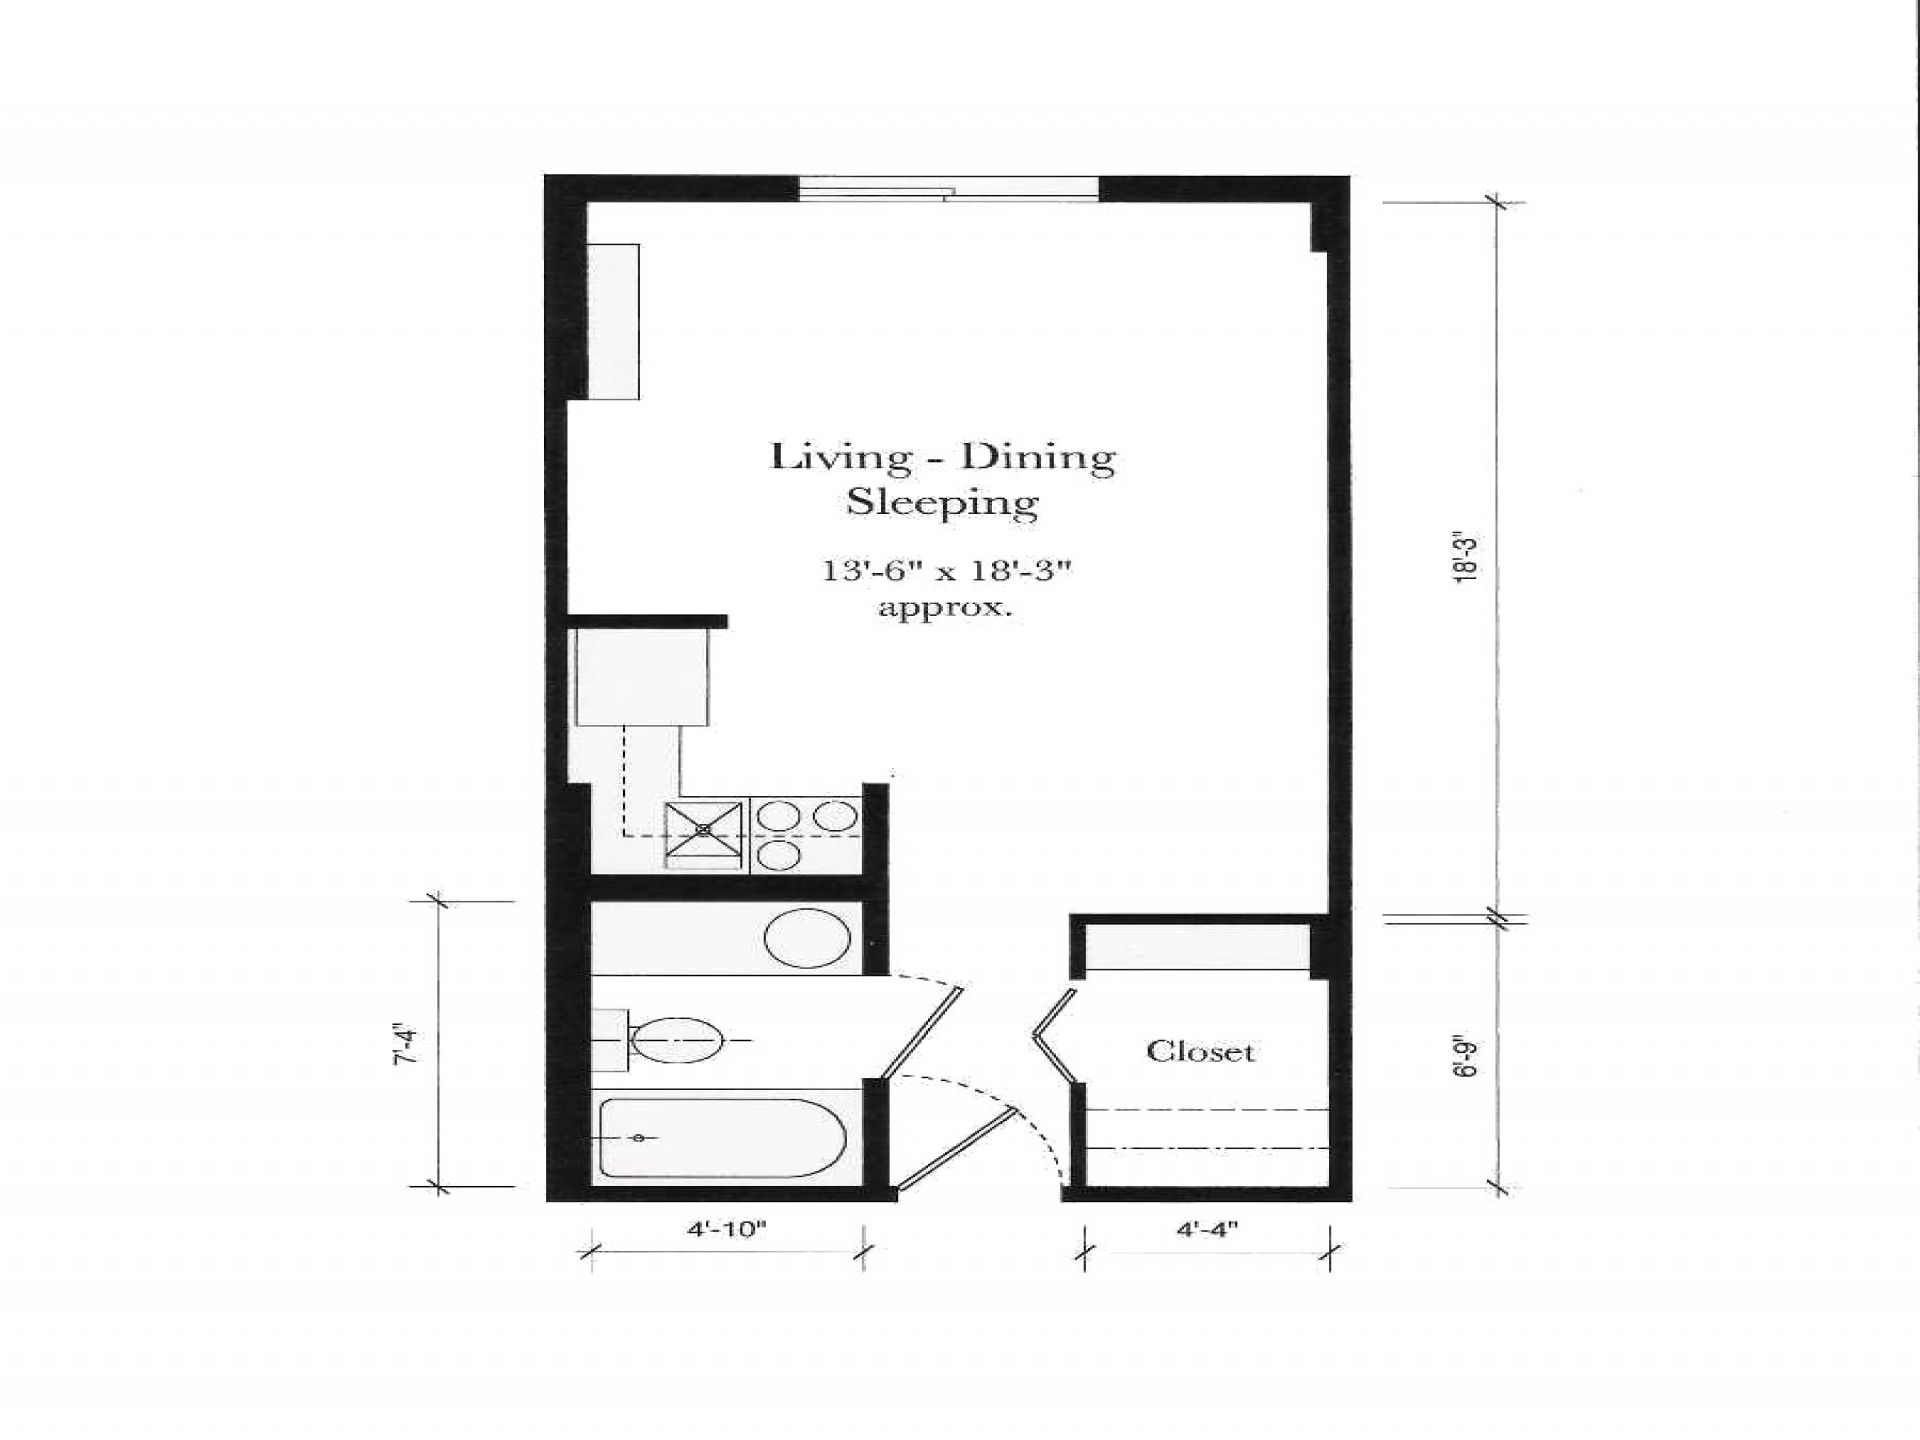 Apartment studio floor plan simple floor design studio for Small apartment design floor plan